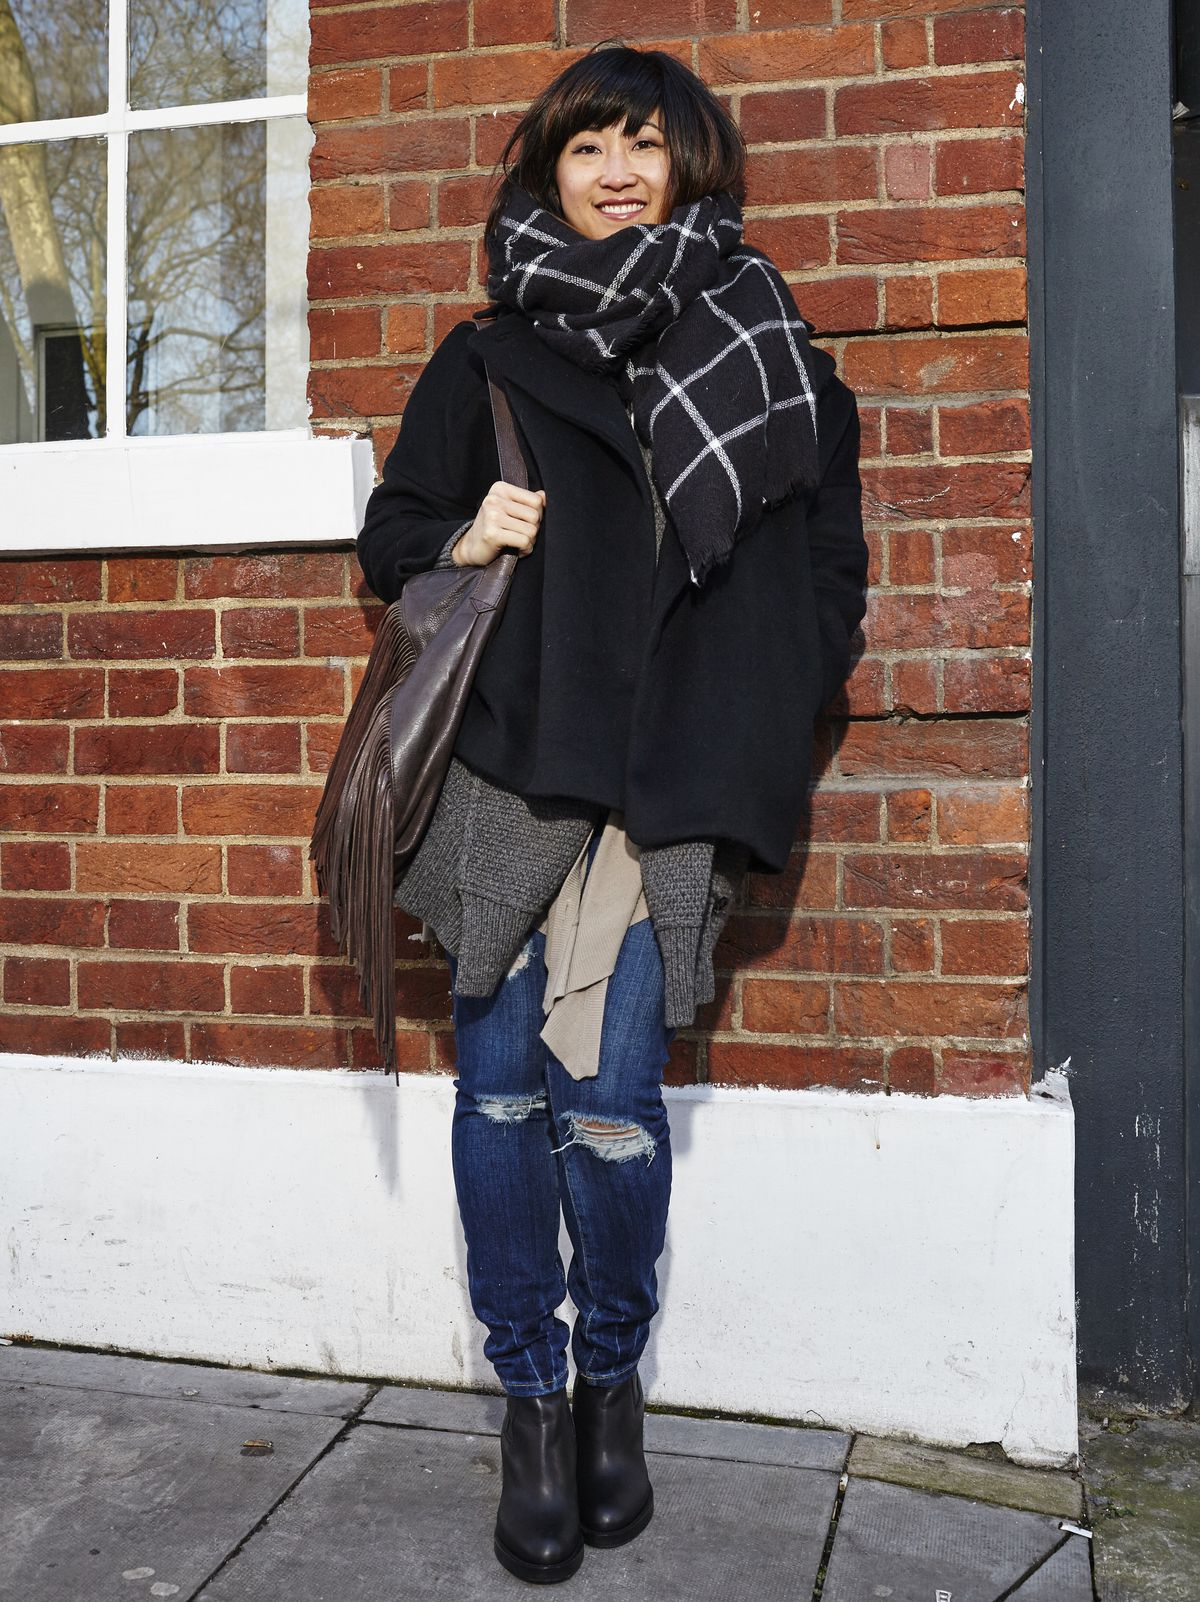 a4947977 Miyon Im, Head of Product, is wearing a Zara coat, a Gucci cardigan, a  Maison Margiela vest, a COS T-shirt, Current/Elliott jeans, Acne boots, a  Zara bag, a ...